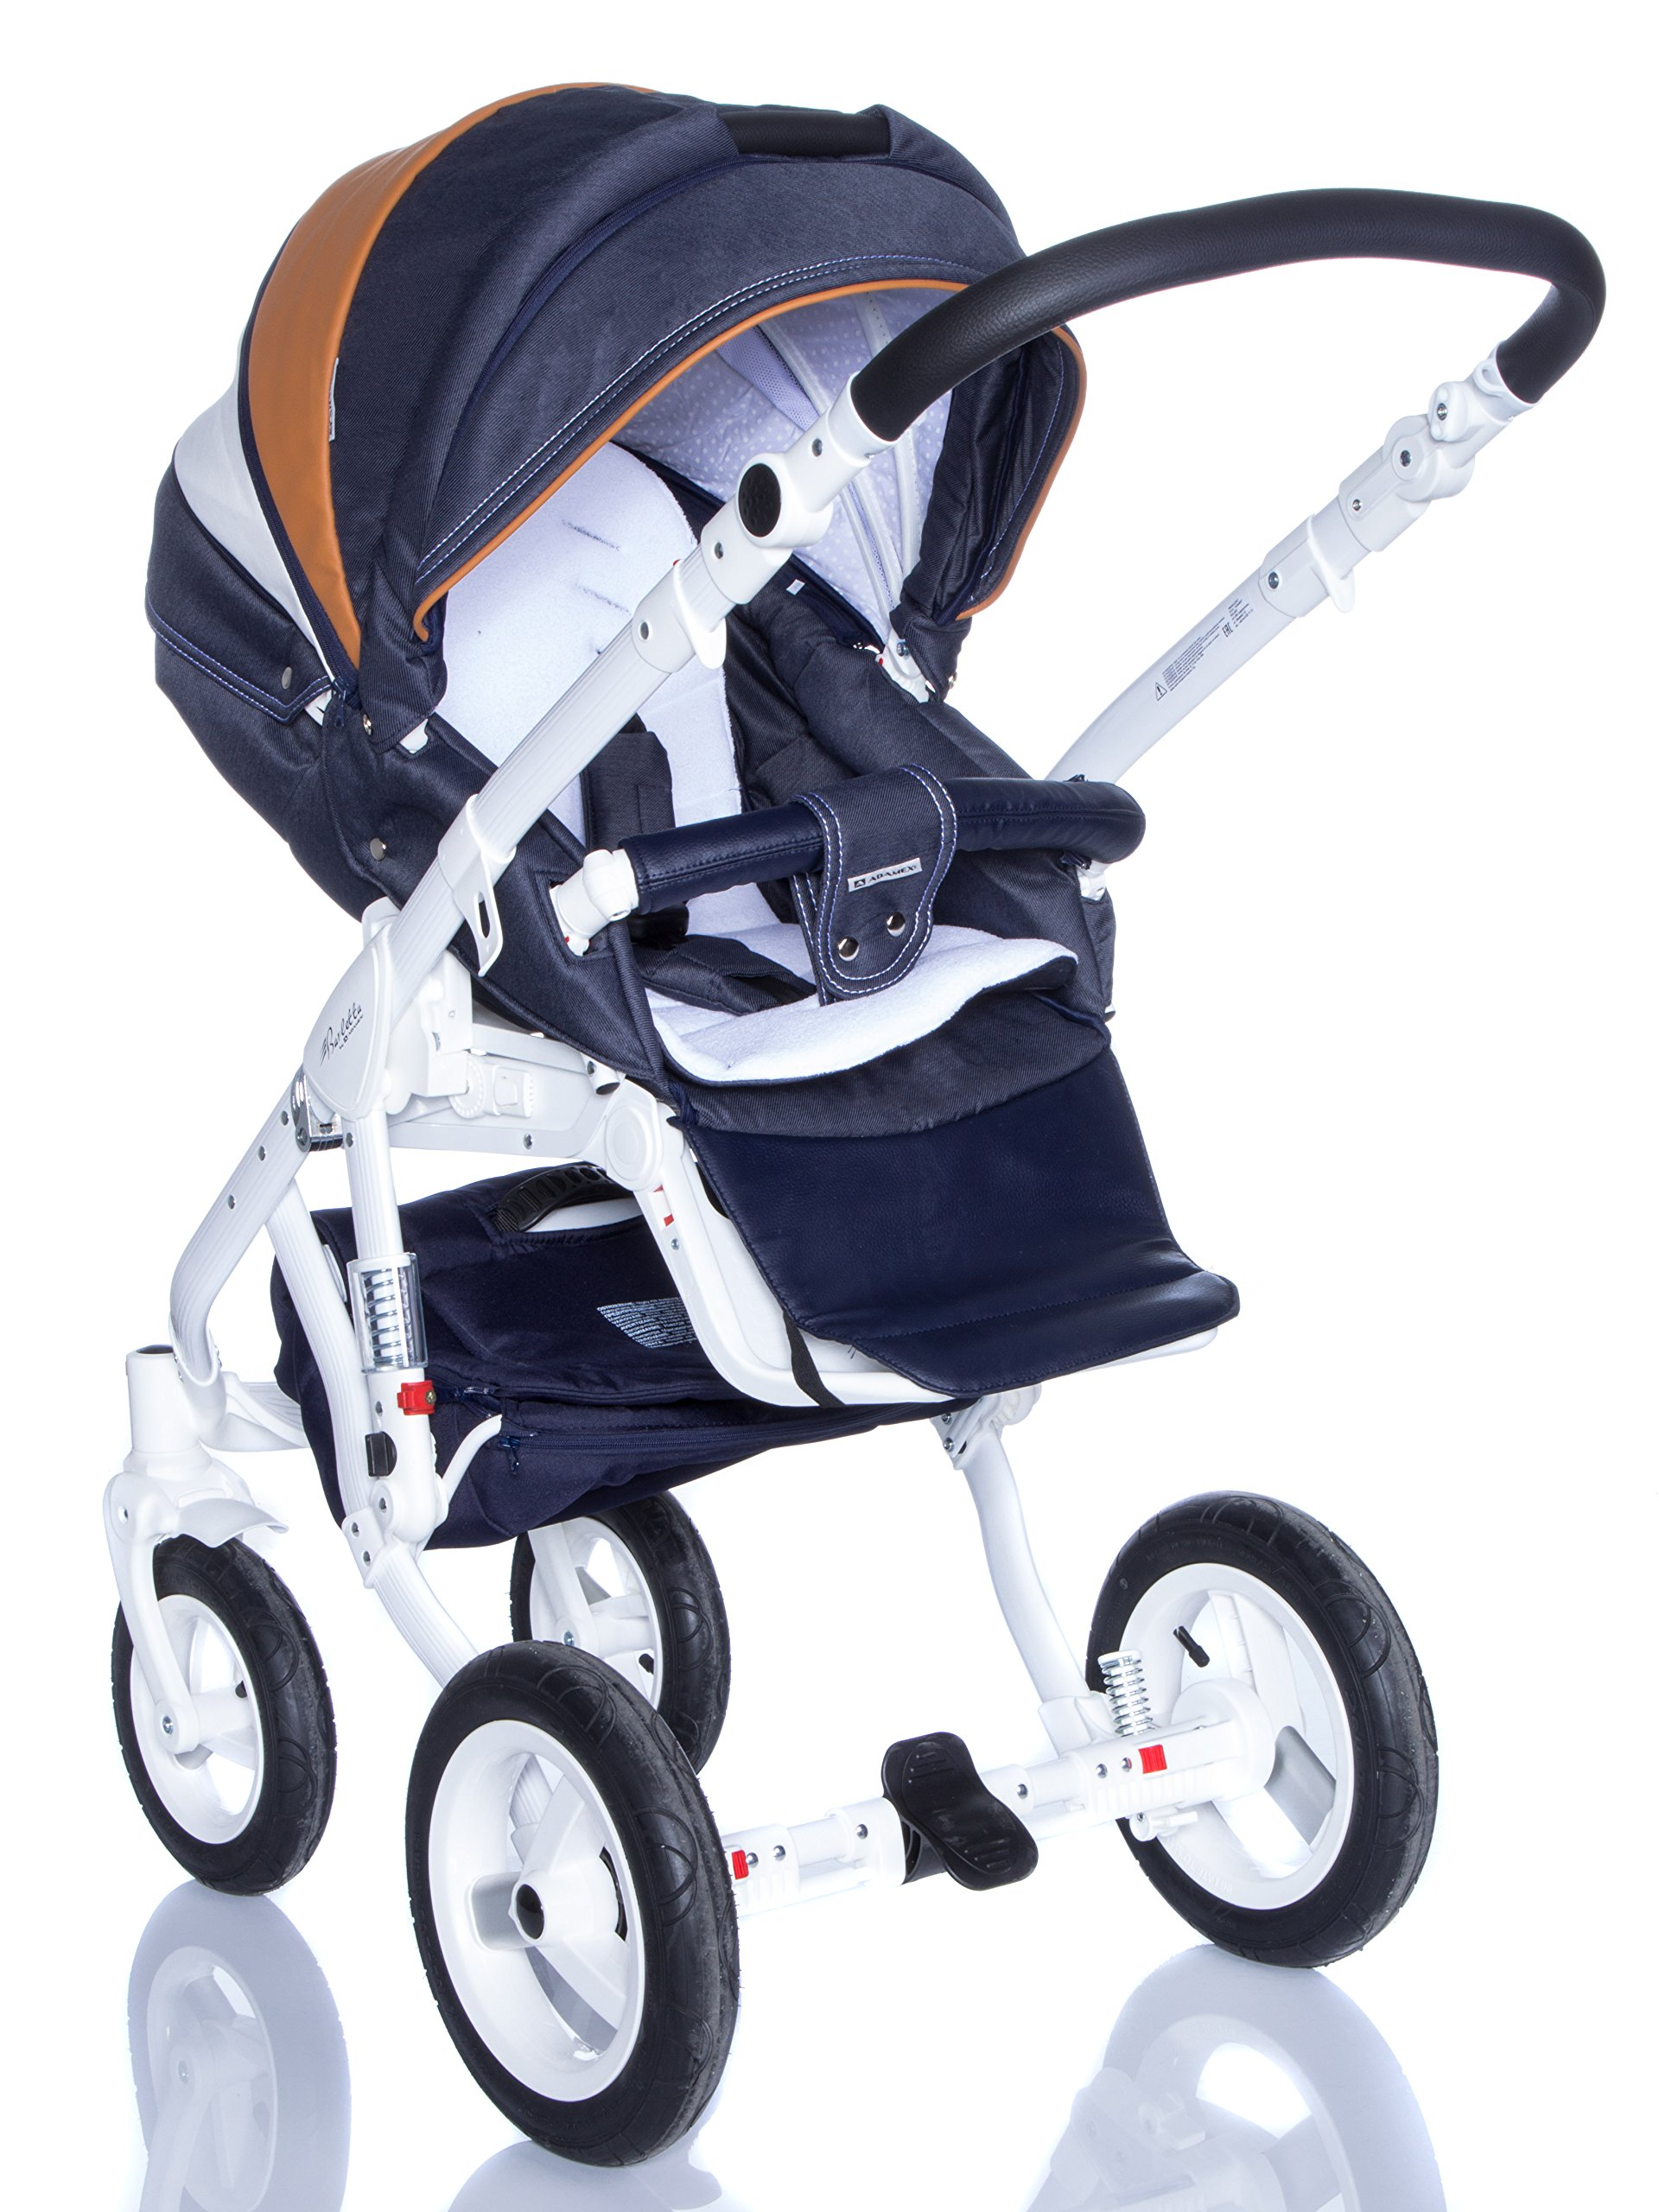 Baby Pram Pushchair Stroller Buggy, Travel System Adamex Barletta New B7 Fox-Navy-White 2in1 + ADAPTORS for CAR Seats: Maxi-COSI CYBEX KIDDY Be Safe Adamex Lockable swivel wheels and lockable side suspension system Light alluminium chassis with polyurethane wheels 2 separate modules + car seats adapters - big and deep baby tub functional sport seat and car seats adapters that can be attached to the following car seats: Maxi-Cosi: City, Cabrio fix, Pebble Cybex: Aton Kiddy: Evoluna i-Size, Evolution Pro 2 Be Safe: iZi Go 4